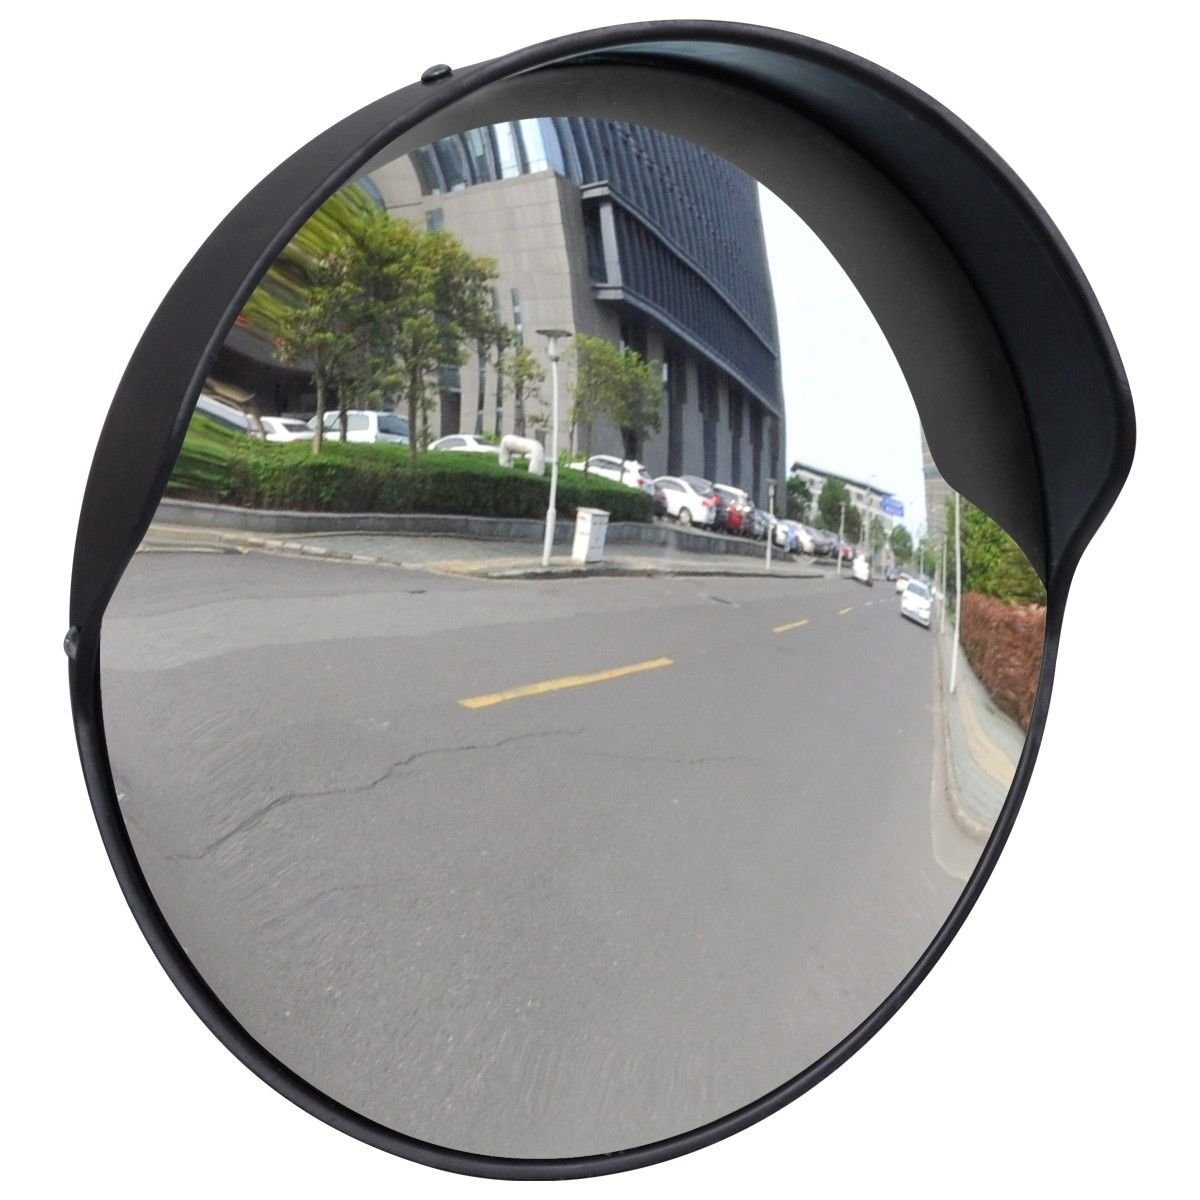 Outdoor Road Traffic Convex PC Mirror Safety & Security, Wide Angle Driveway,12''